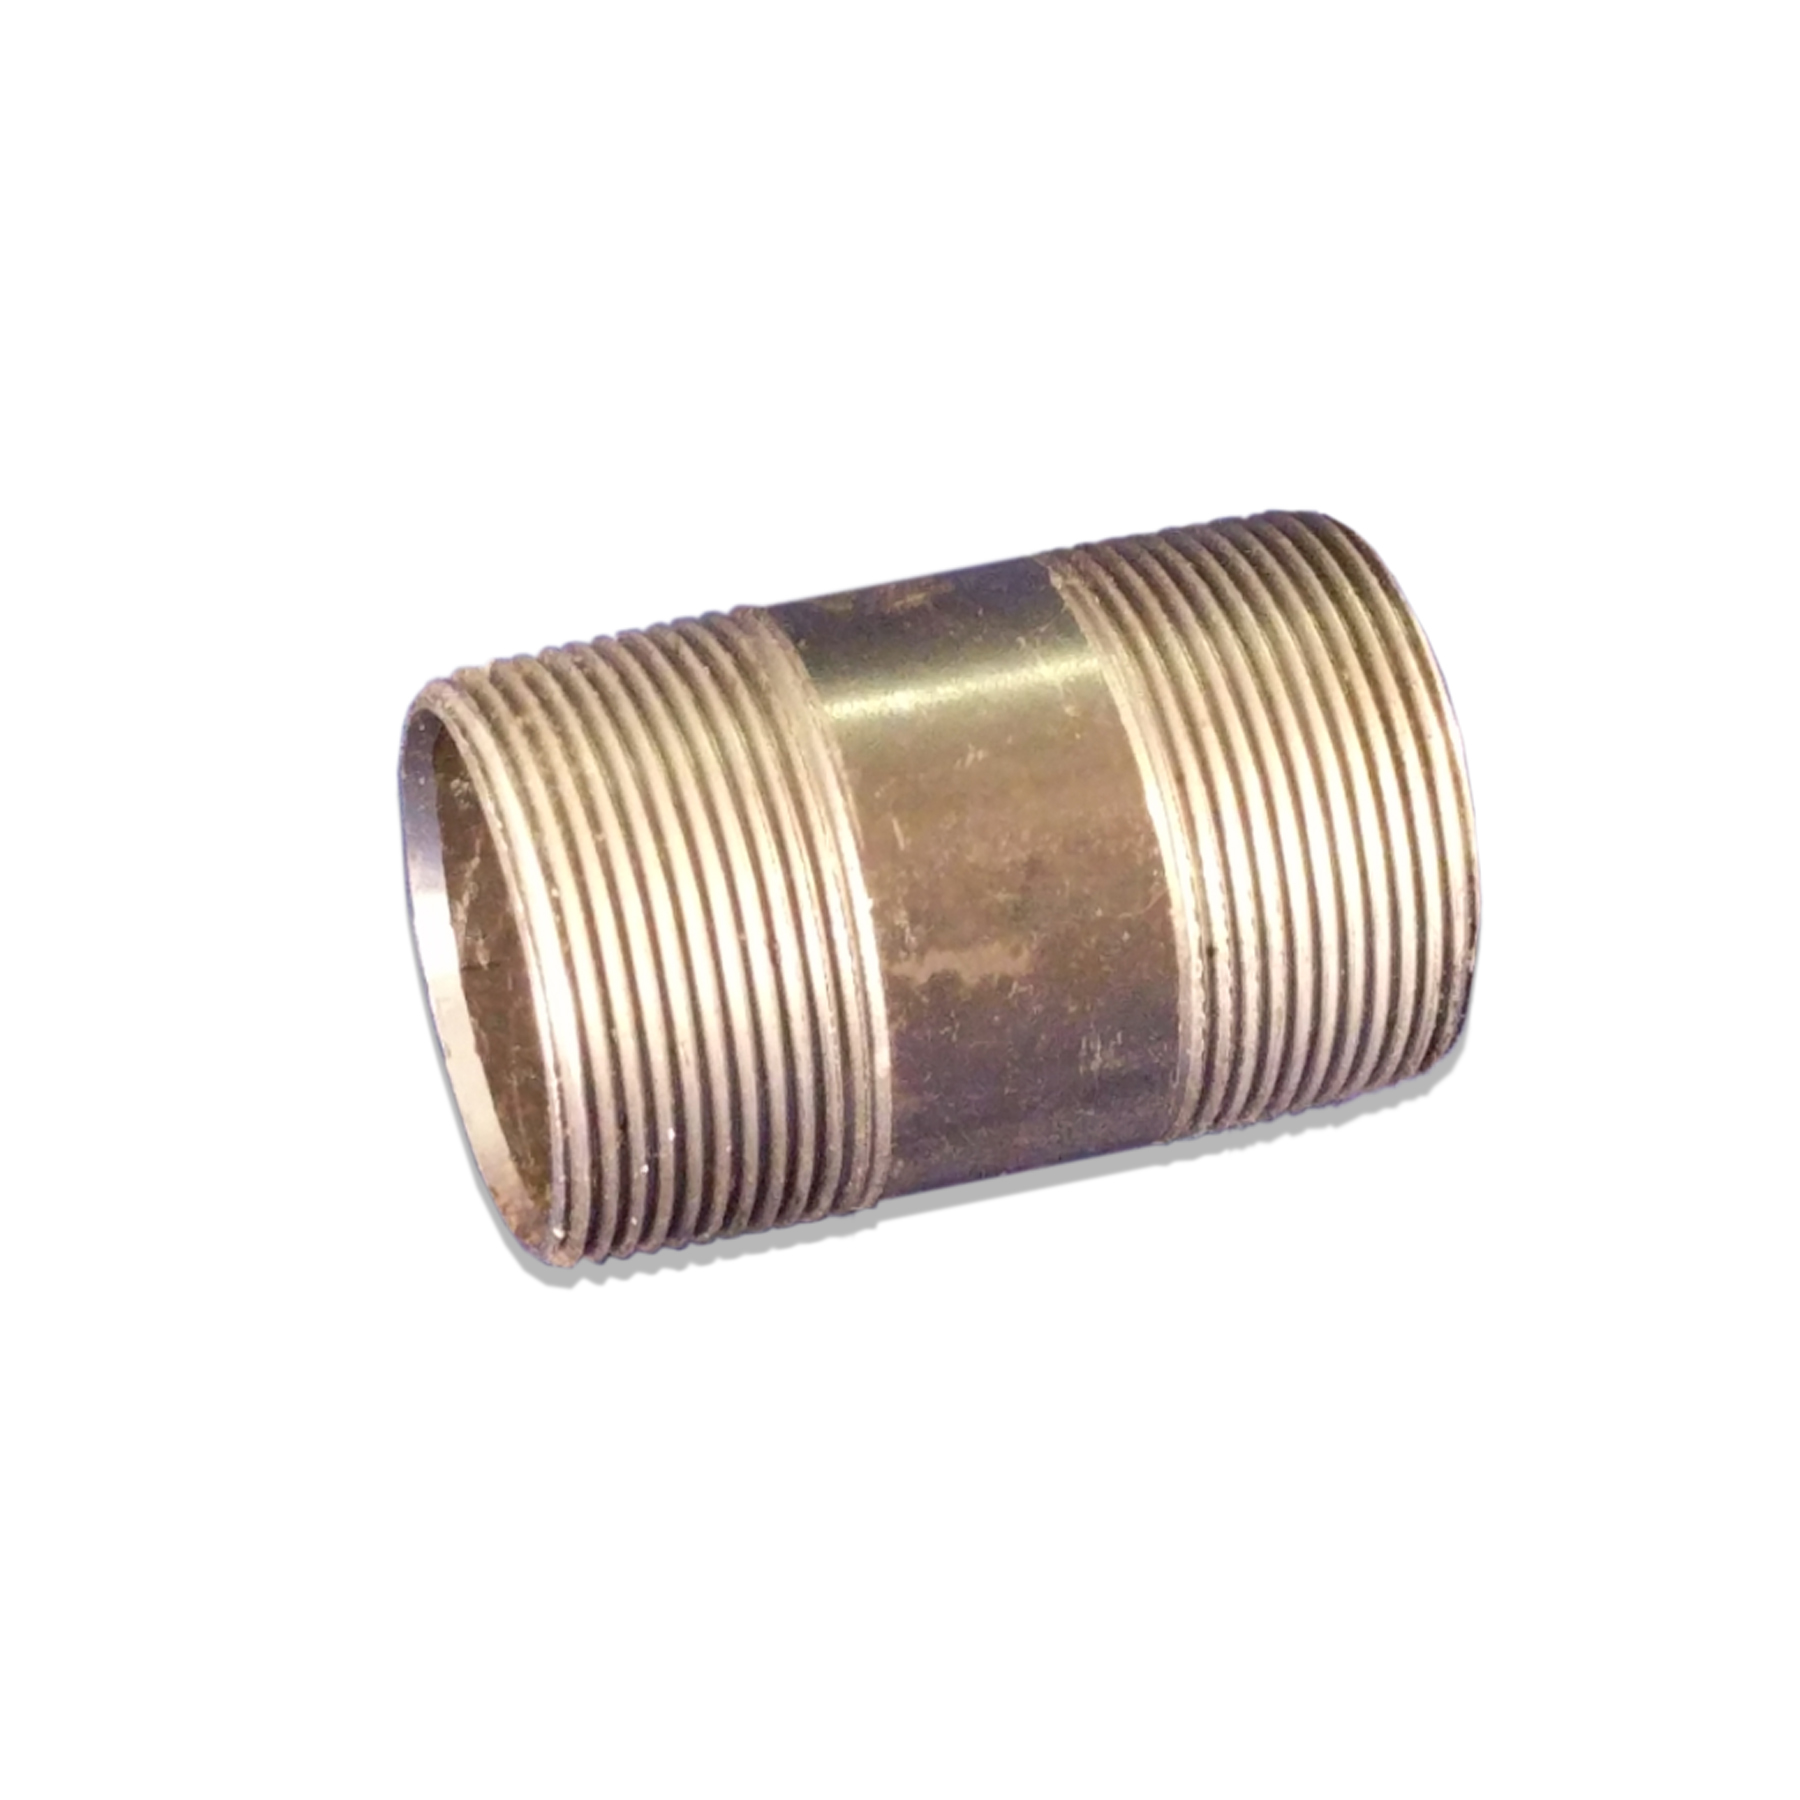 Pipe Nipple Exhaust Fitting, 1-1/2 in. (M) NPT x 3 in.